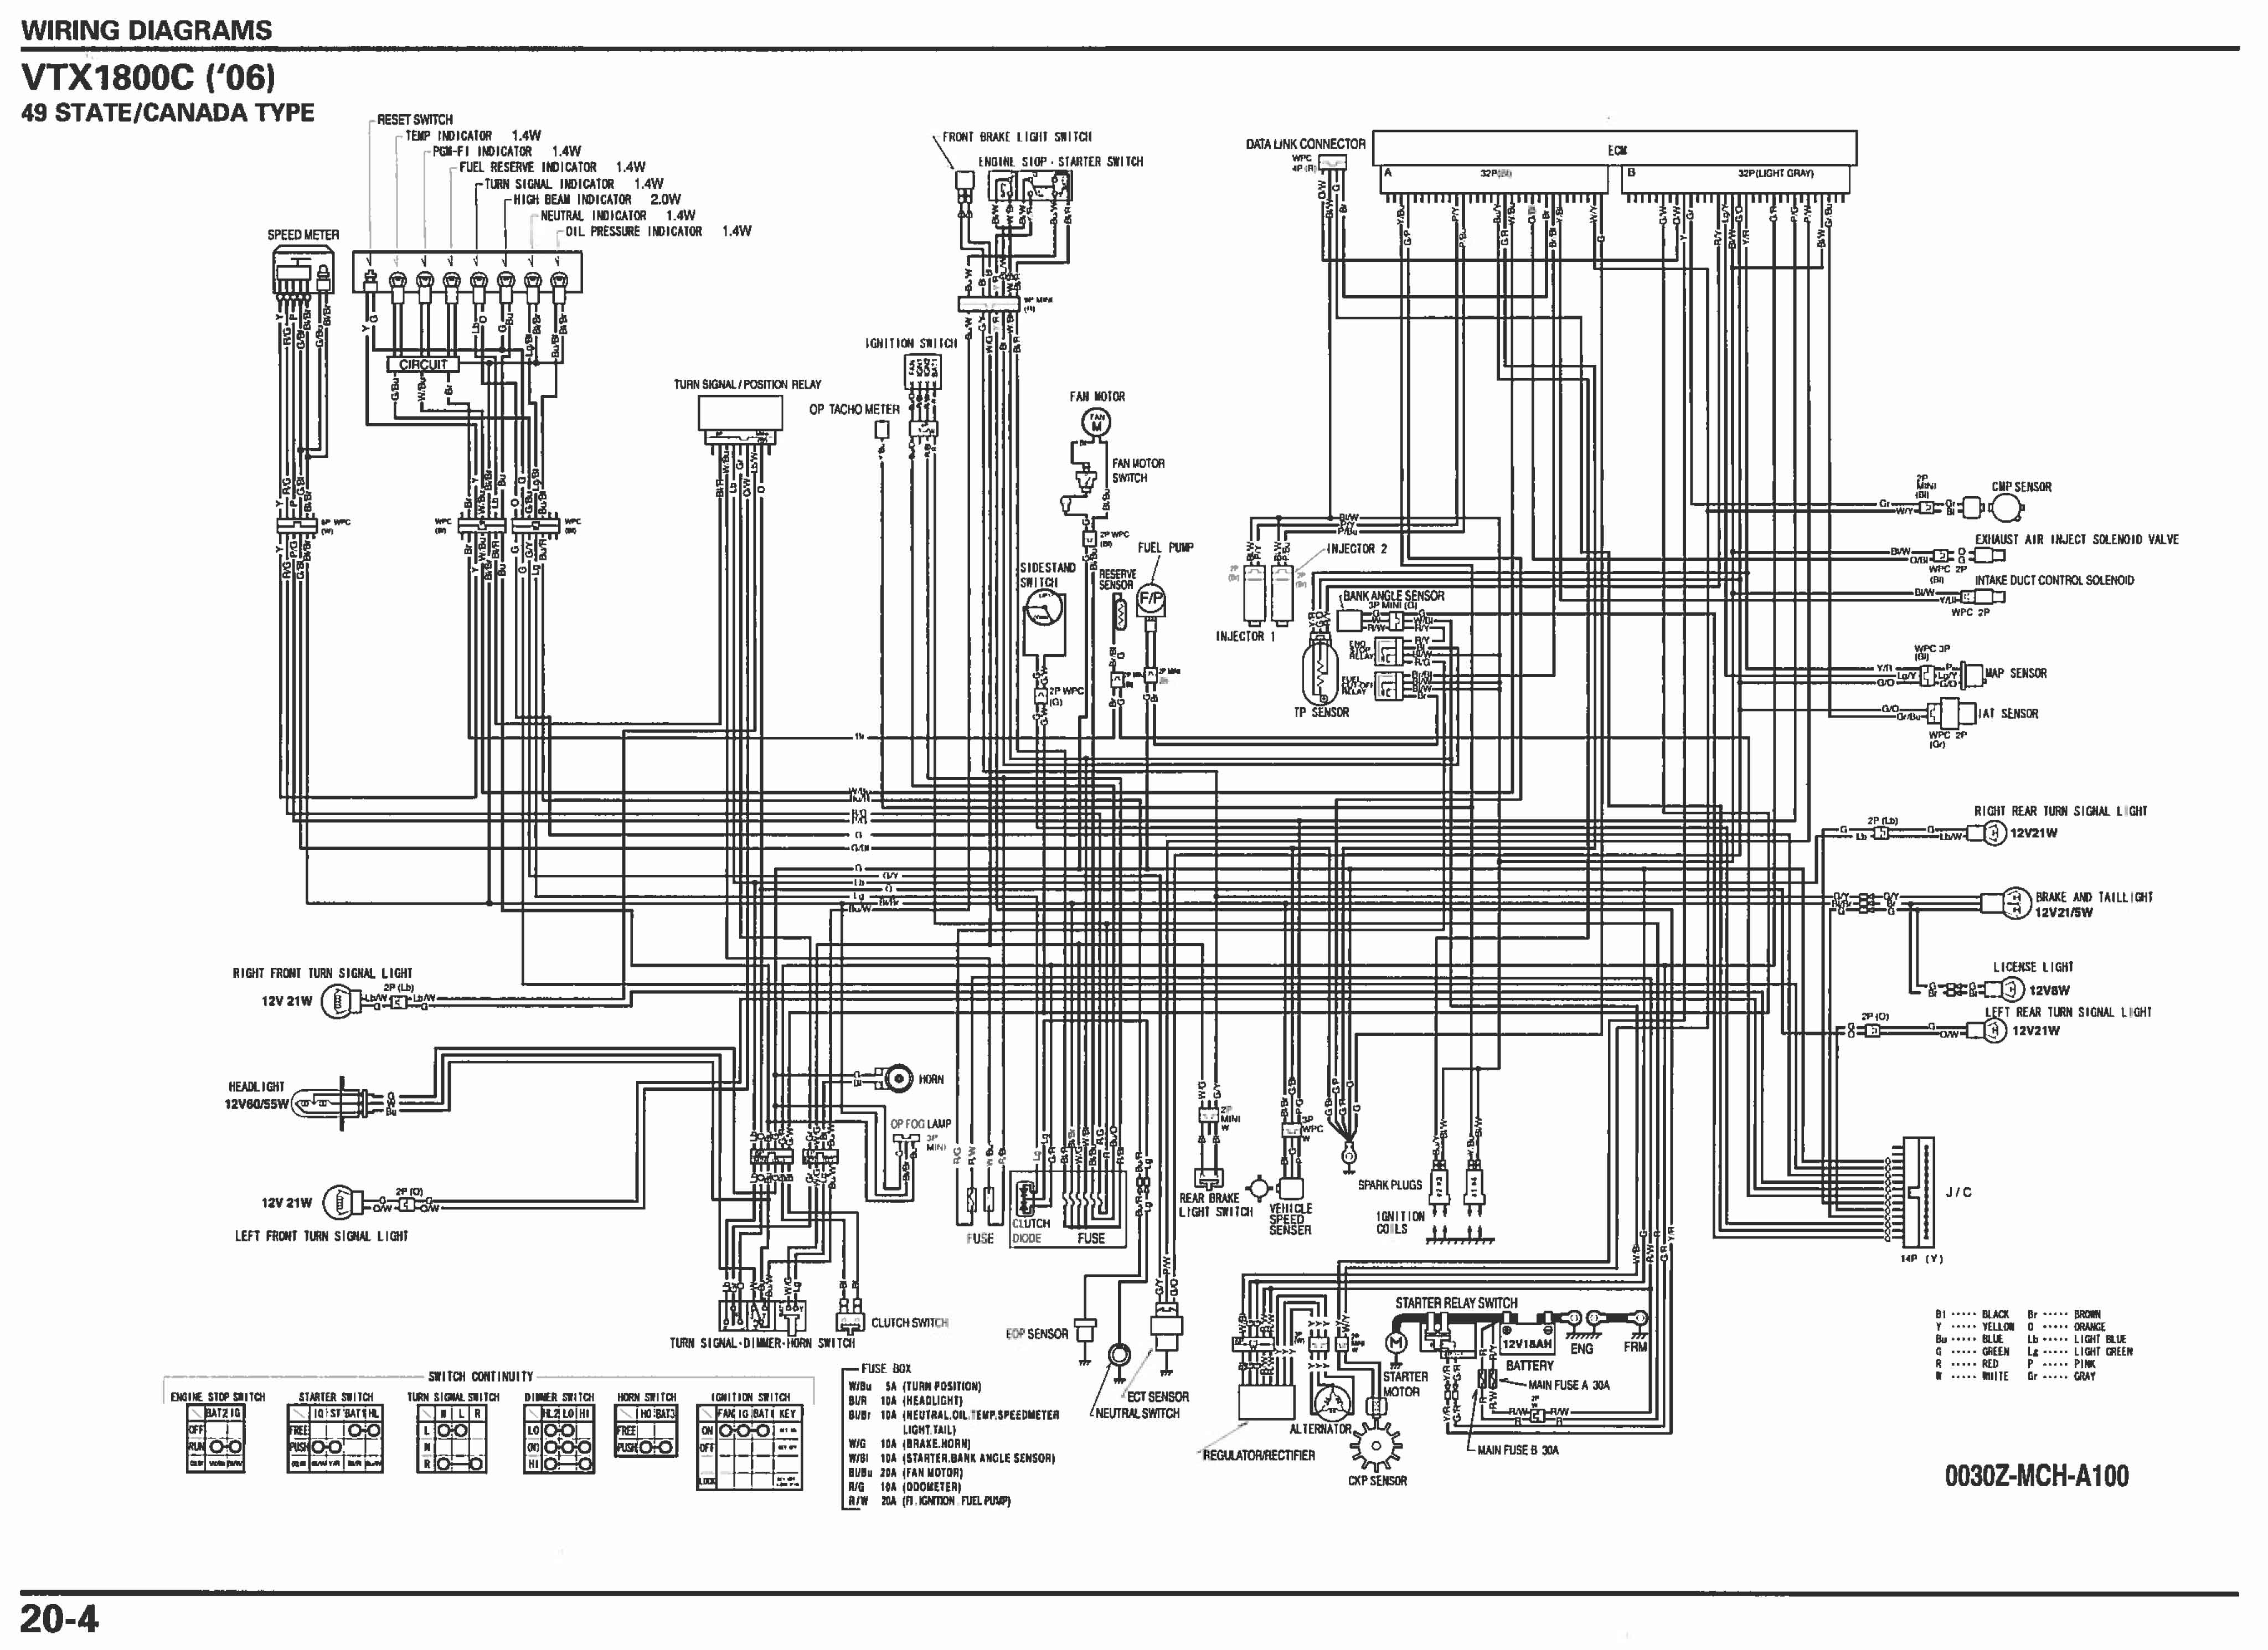 [NRIO_4796]   OM_0048] Honda Goldwing Wiring Diagram Also Honda Goldwing 1500 Wiring  Diagrams Wiring Diagram | Alumacraft Wiring Diagram Tach |  | Phil Arcin Comin Peted Rious Sand Aesth Heeve Mohammedshrine Librar Wiring  101